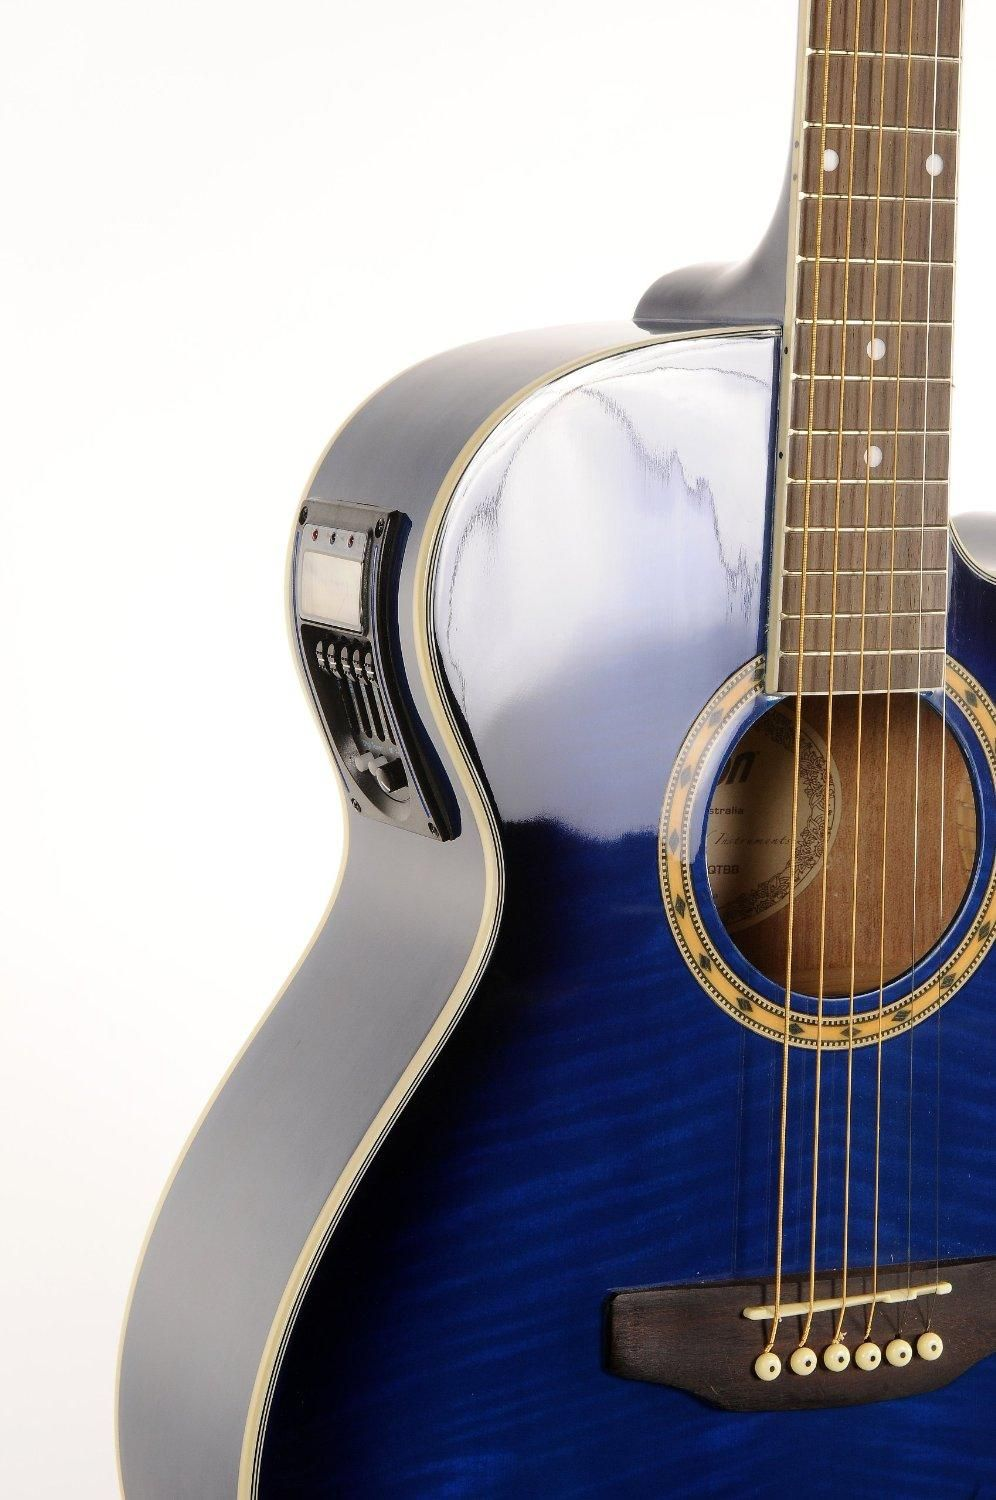 Latestpricedrops On Twitter Electro Acoustic Guitar Acoustic Guitar Guitar